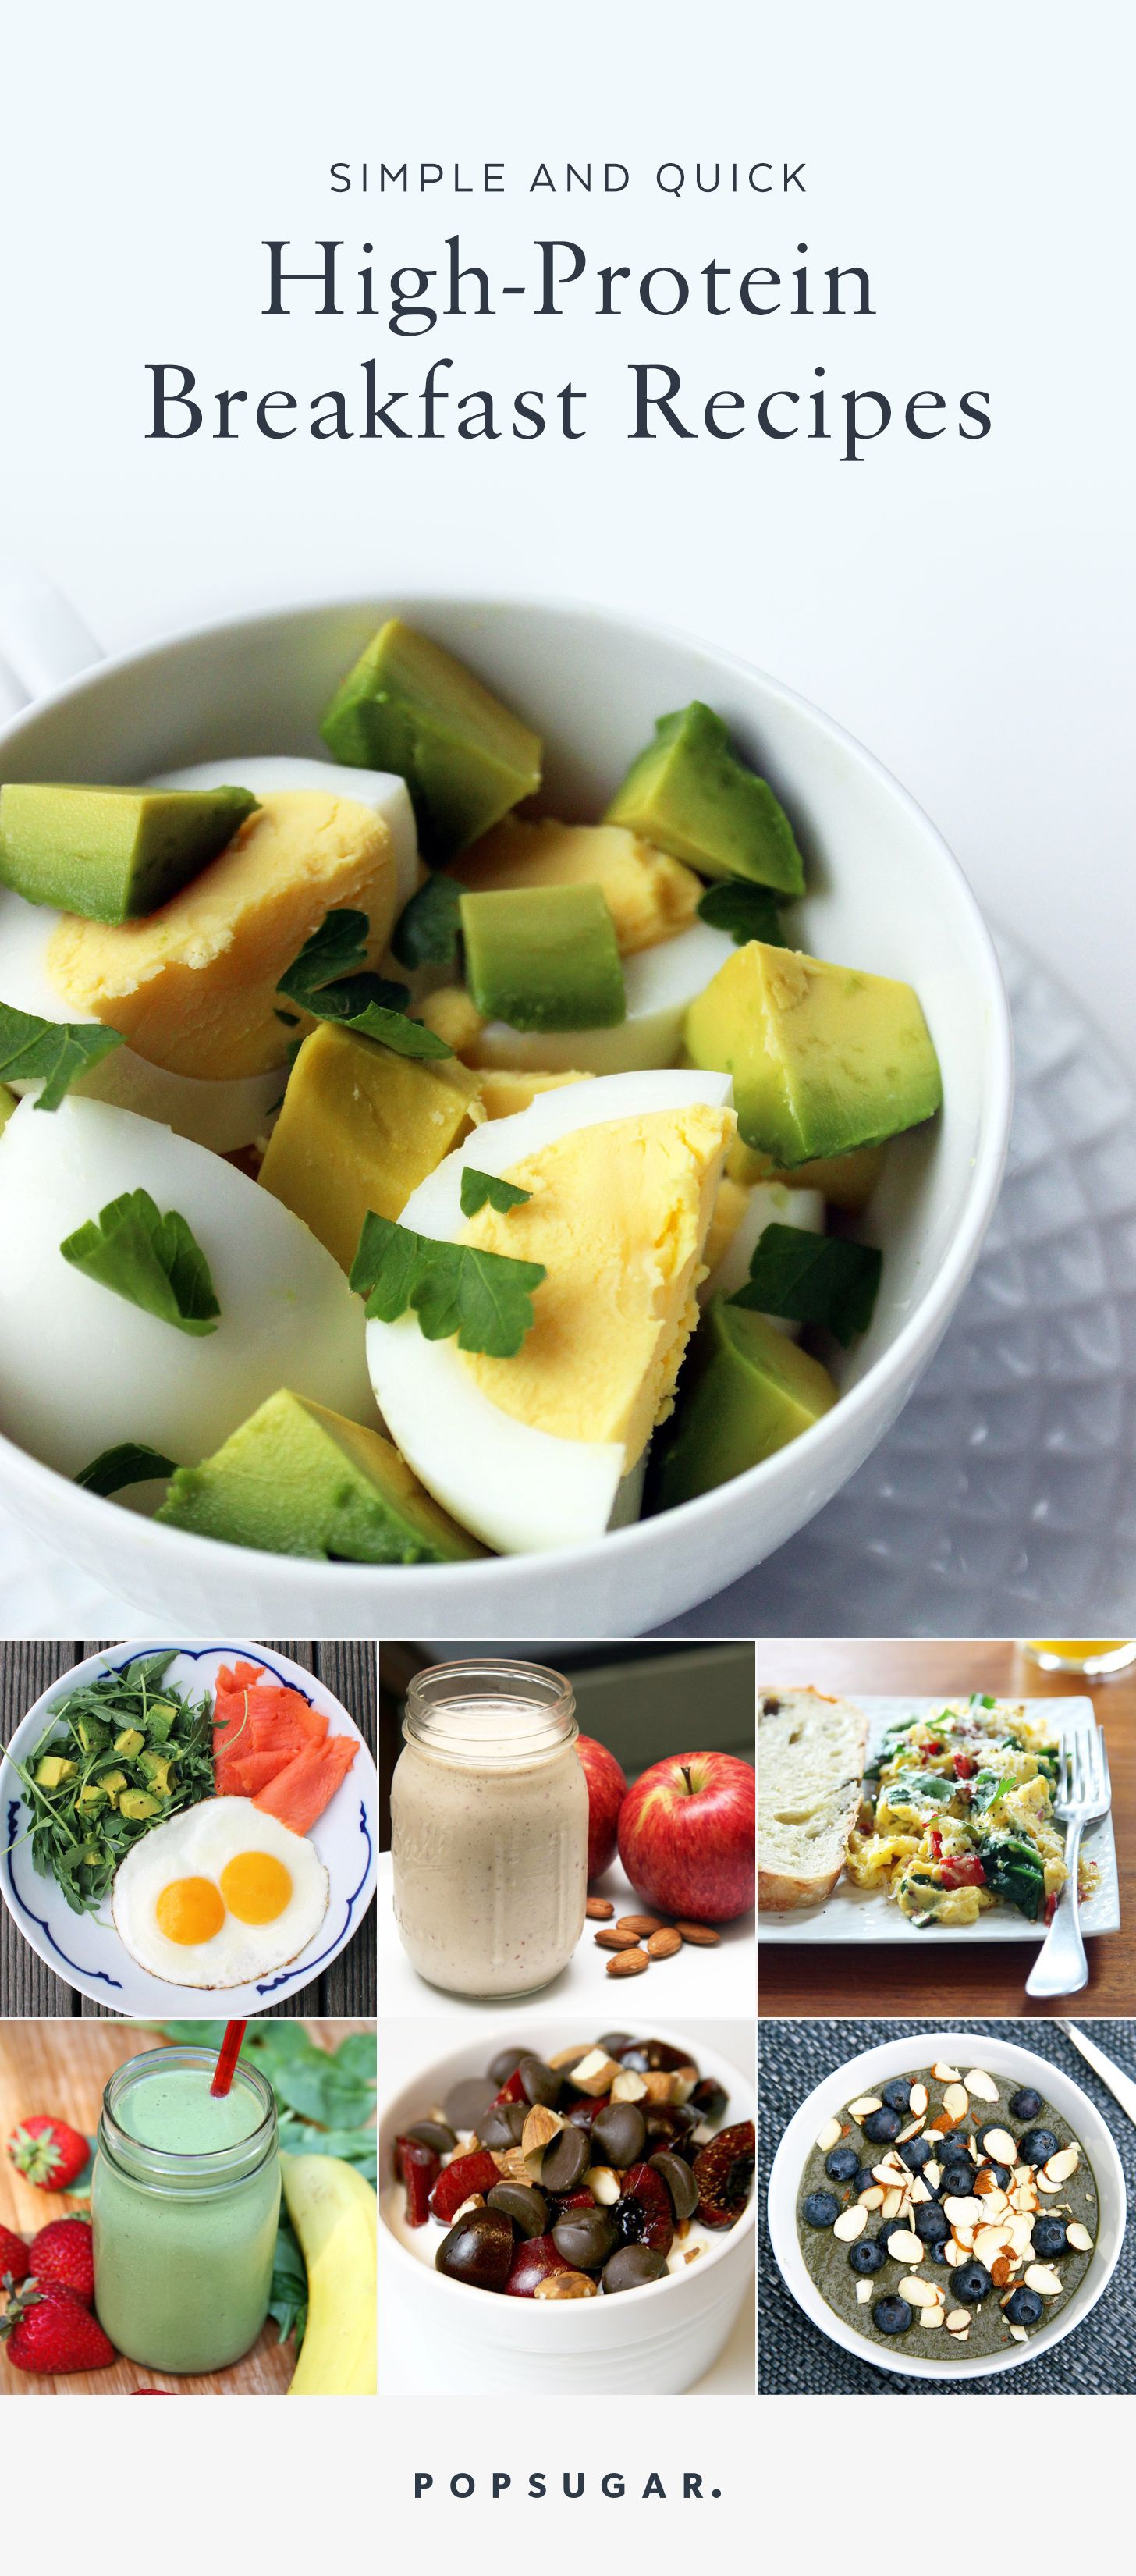 21 HighProtein Breakfasts That Barely Take Any Time to